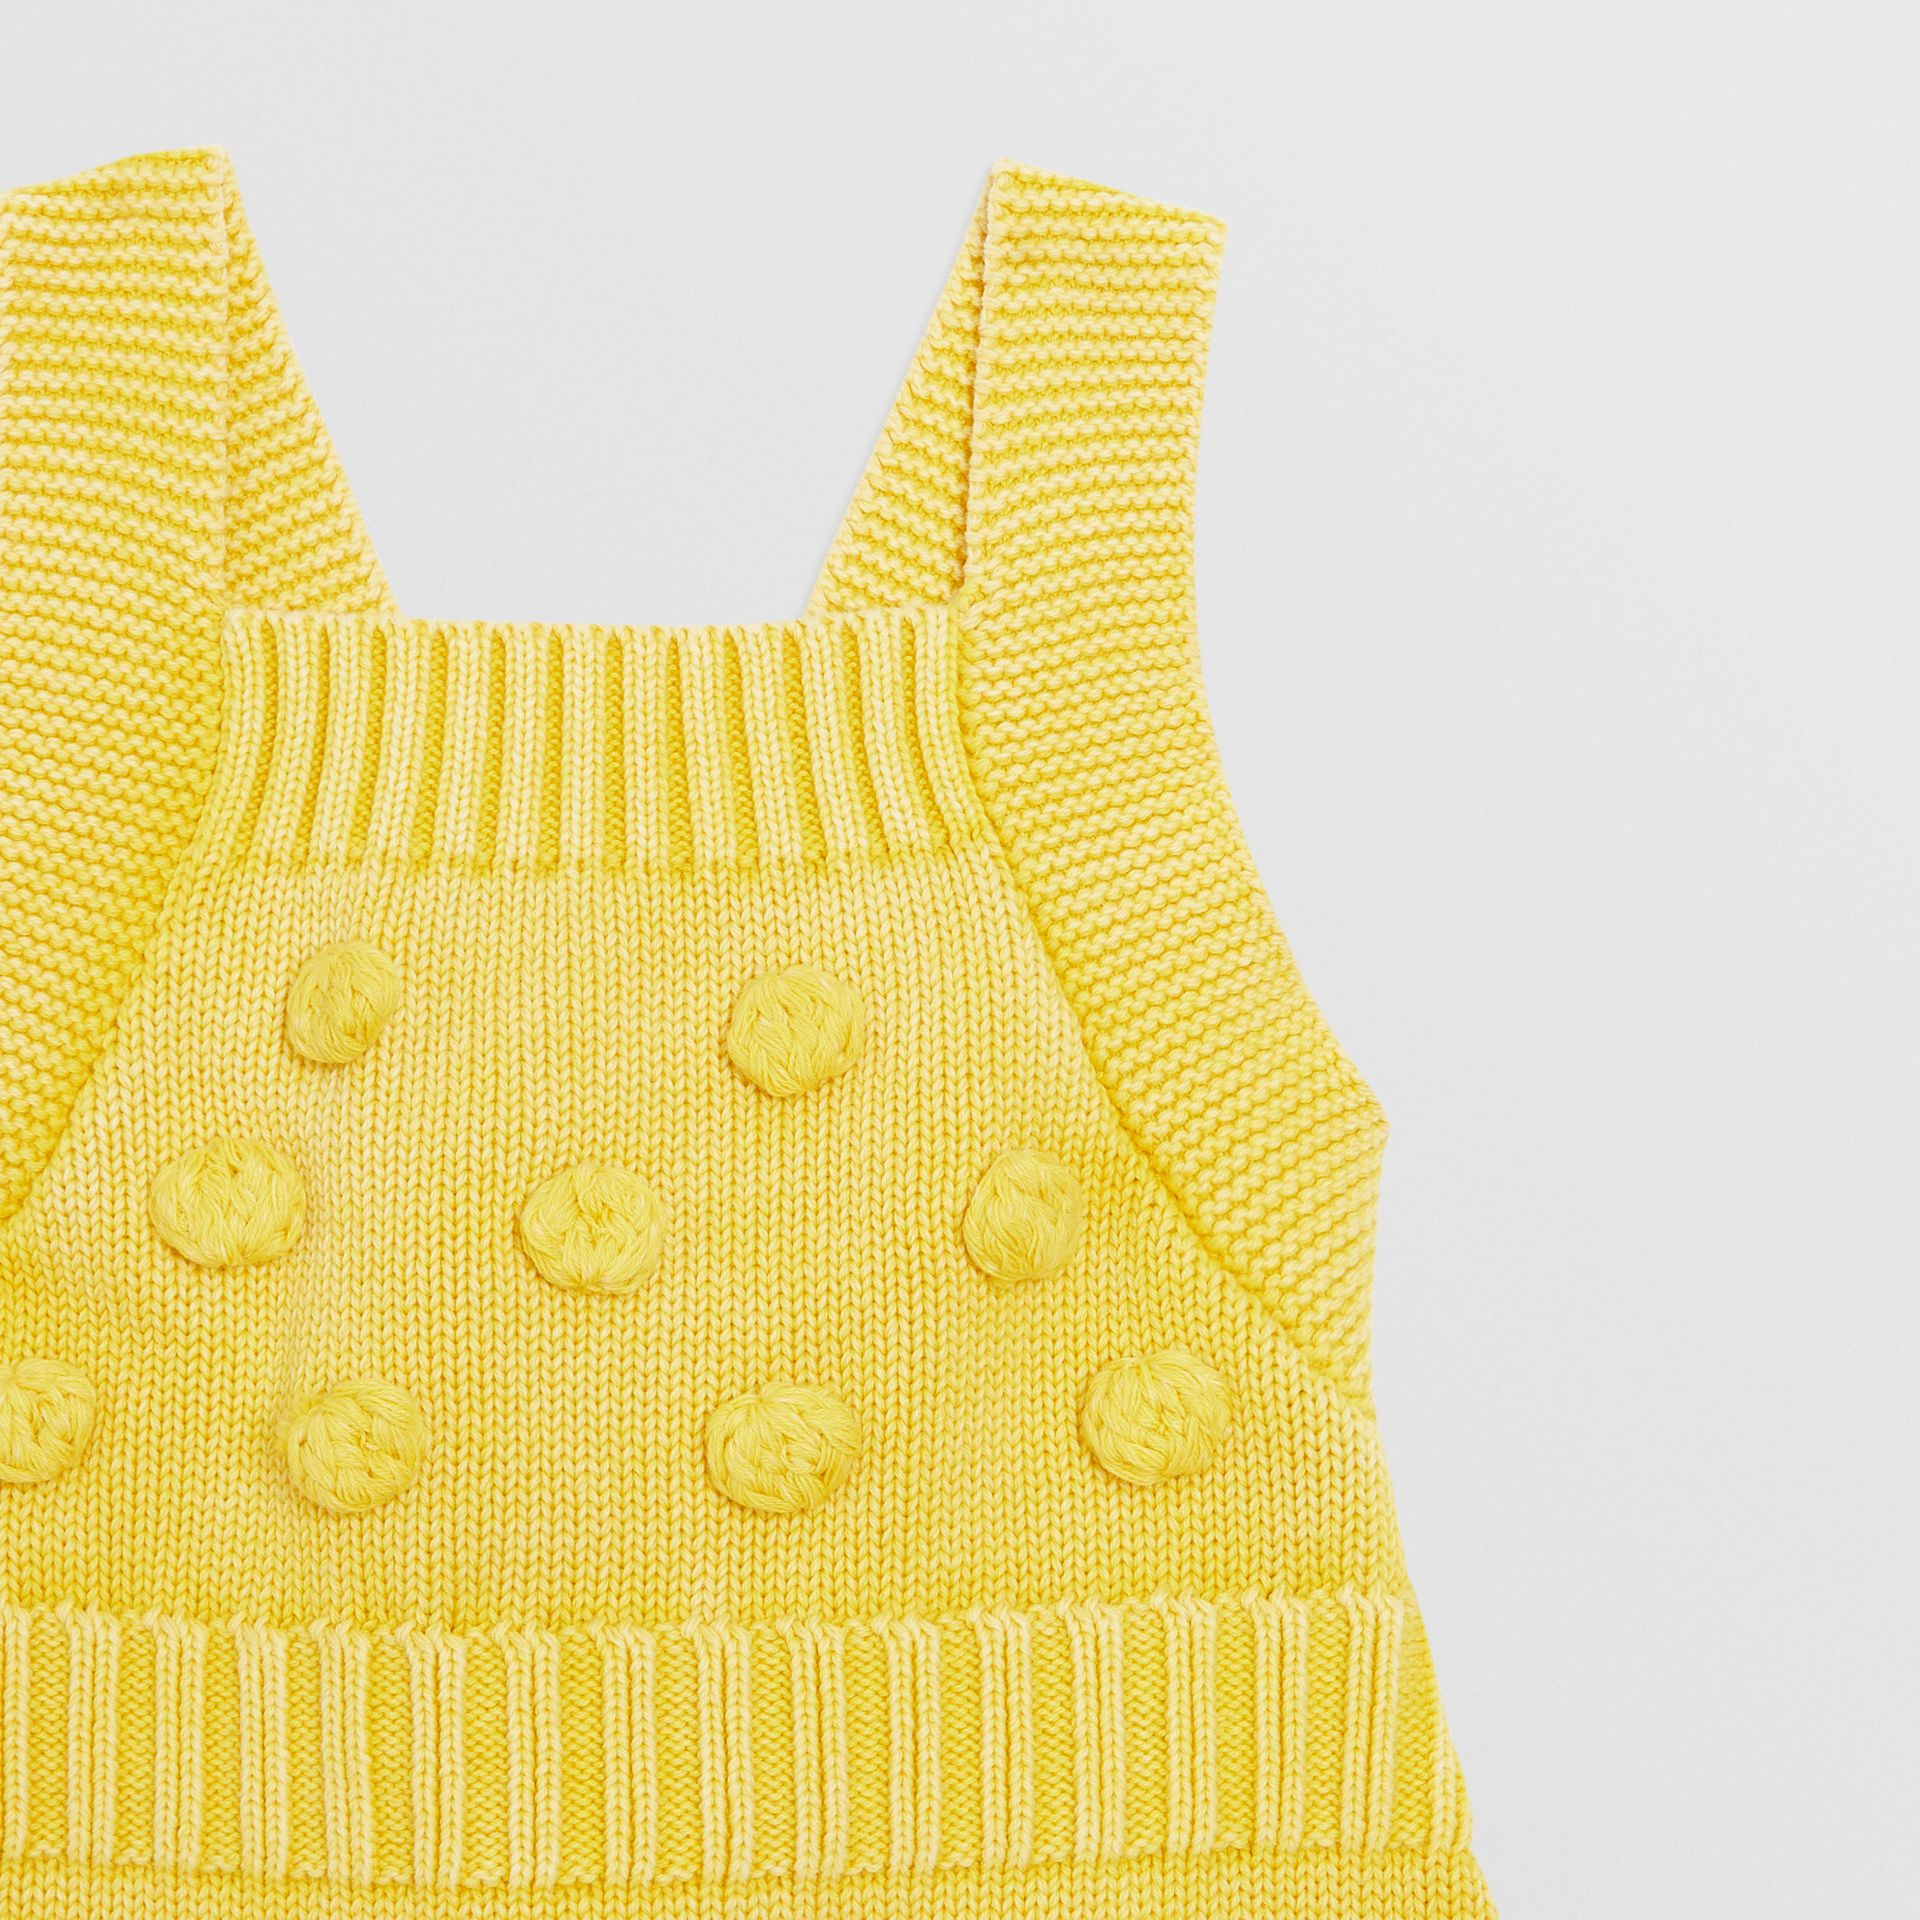 Contrast Knit Cotton Playsuit in Citrus Yellow - Children | Burberry - gallery image 4